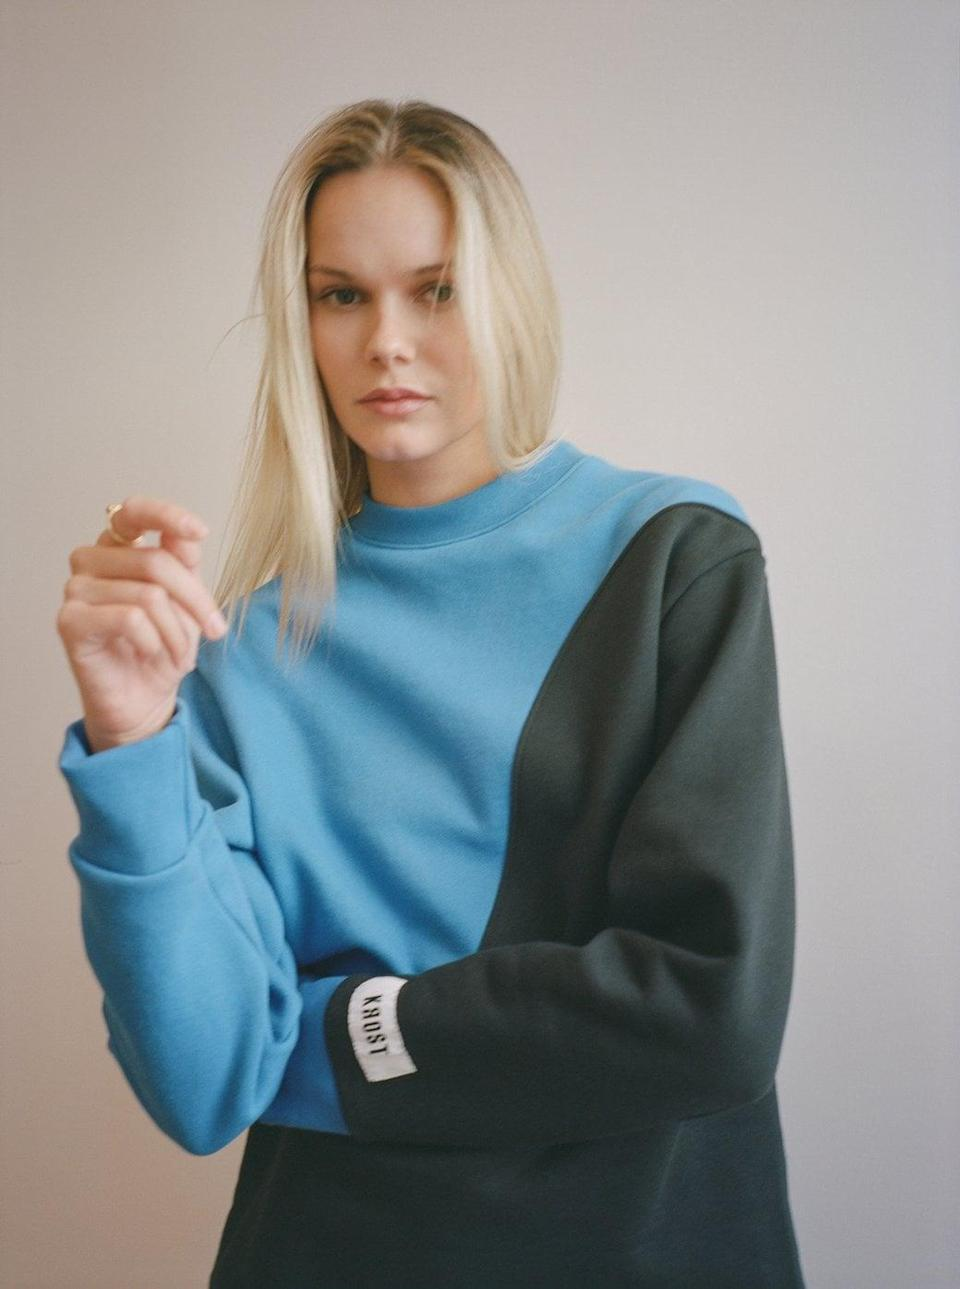 <p>KROST New York's latest collection features this crewneck which is crafted with 100% durable fleece. The line is created by upcycled fabris and is sourced, milled, designed &amp; produced in New York.</p> <p><strong>What We'd Buy</strong>: <span>KROST New York Upcycle Fleece Crewneck</span> ($118)</p>